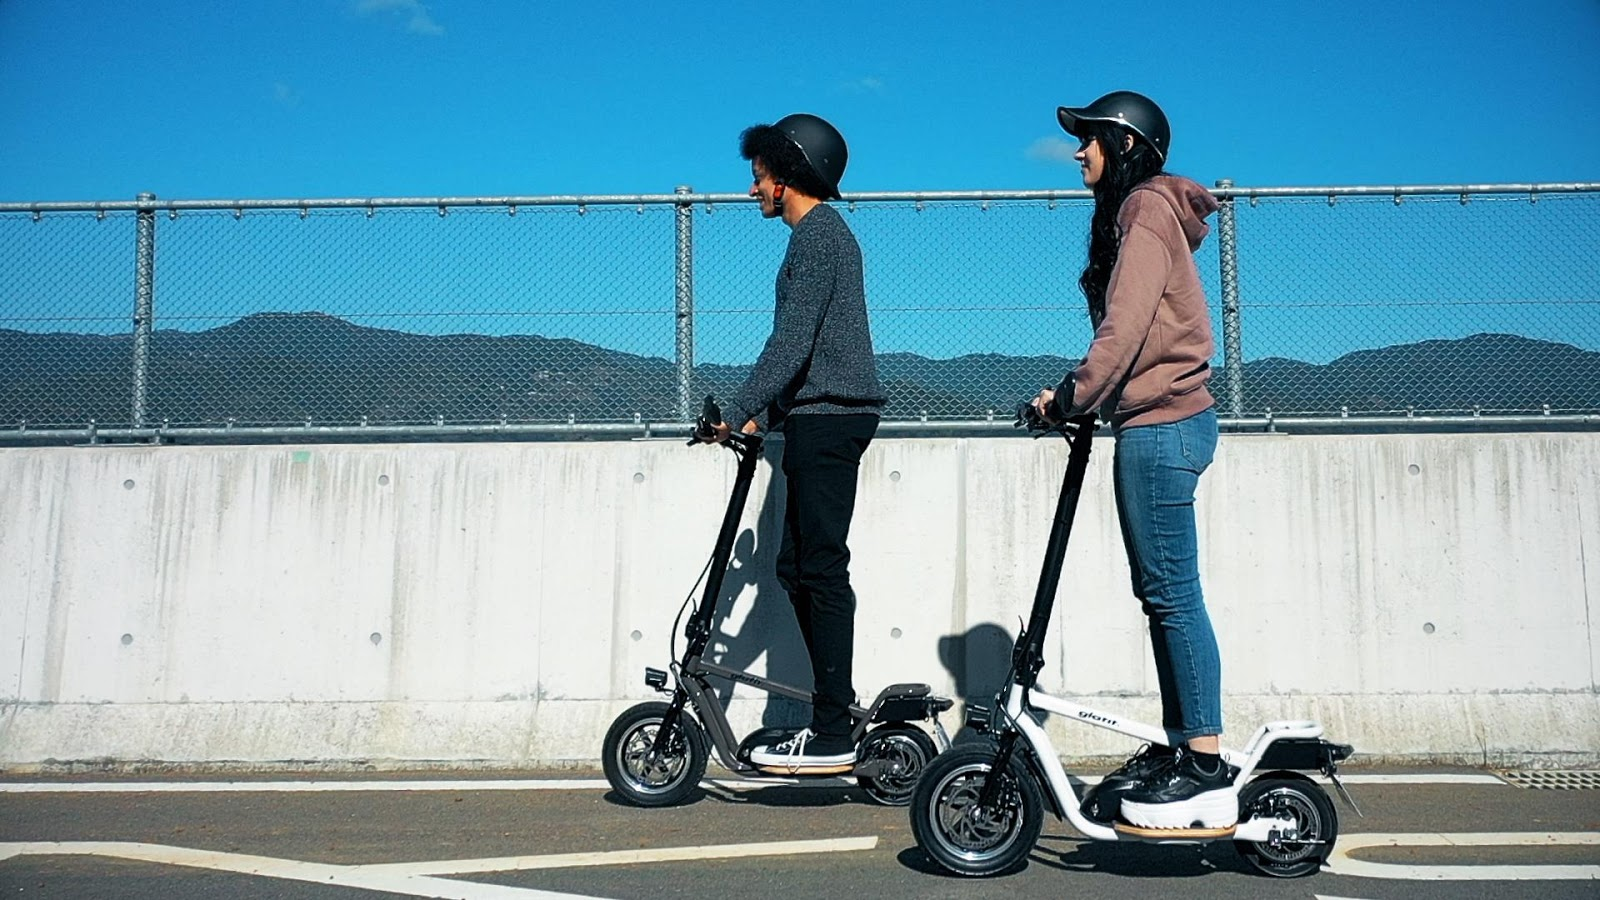 A couple riding e-scooters on the world; e-scooters are designed by Glafit